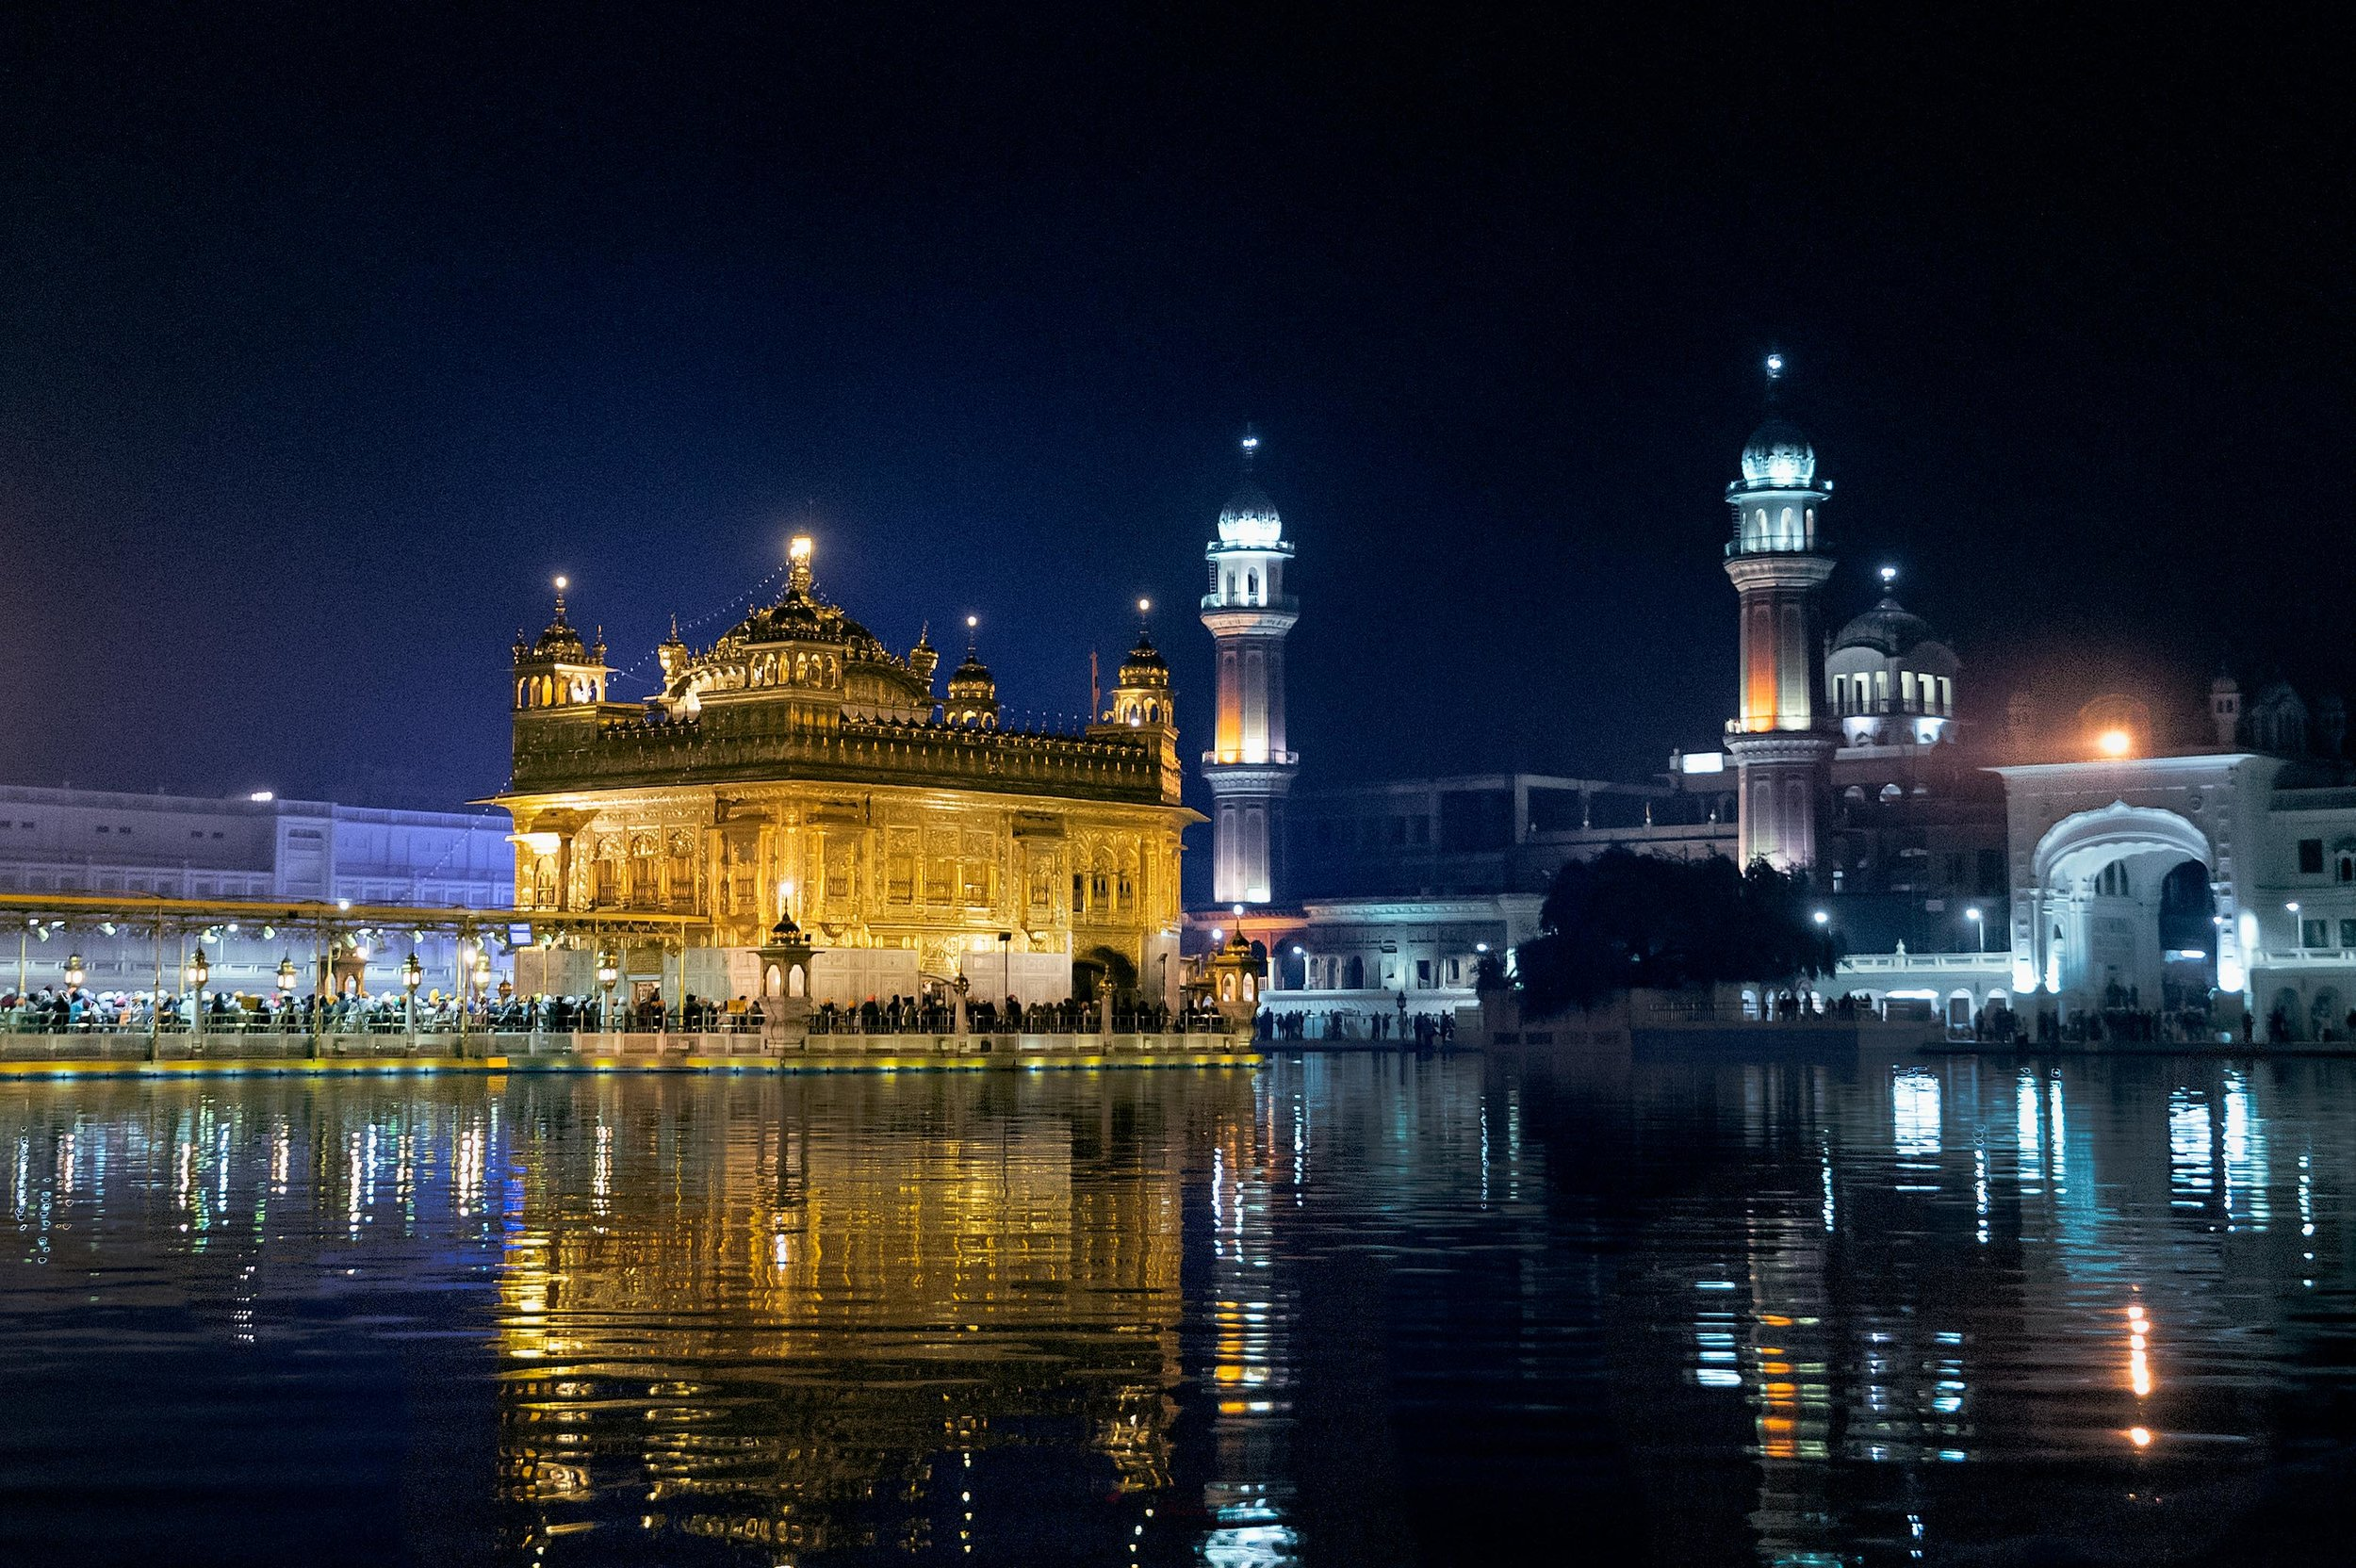 I parted with this holy place with another view of the Sri Harmandir Sahib. It's just so stunning.